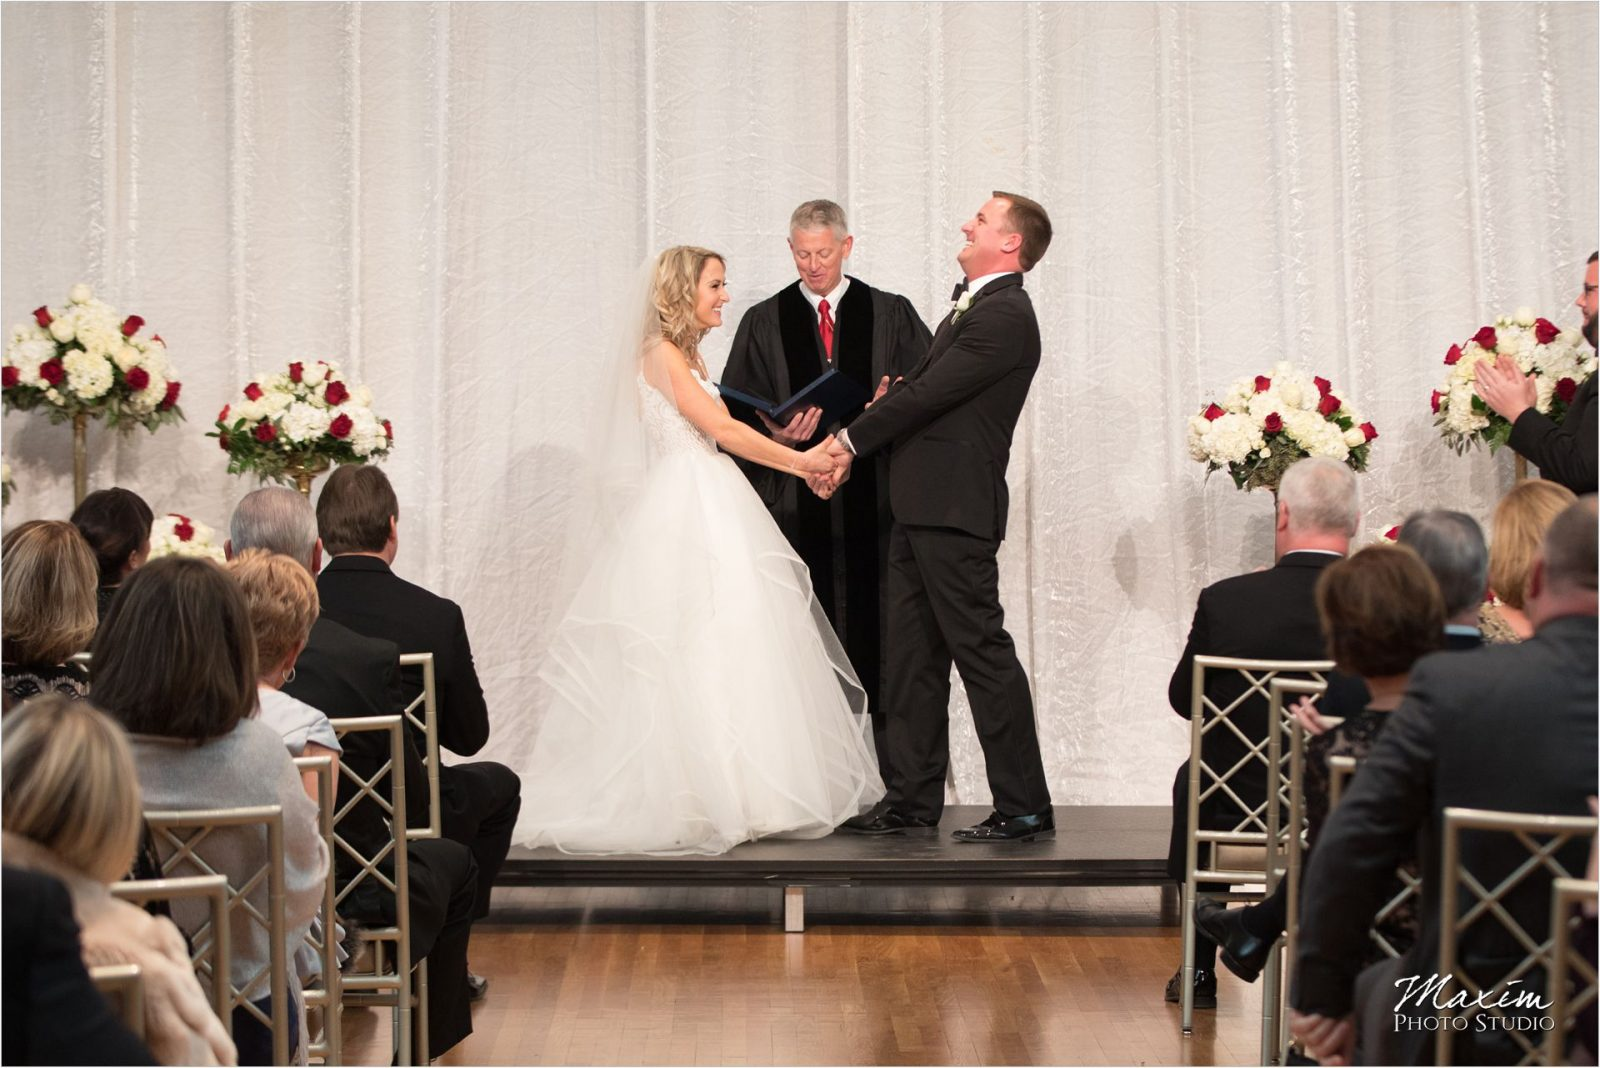 Cincinnati Music Hall Ballroom Wedding Ceremony Bride Groom